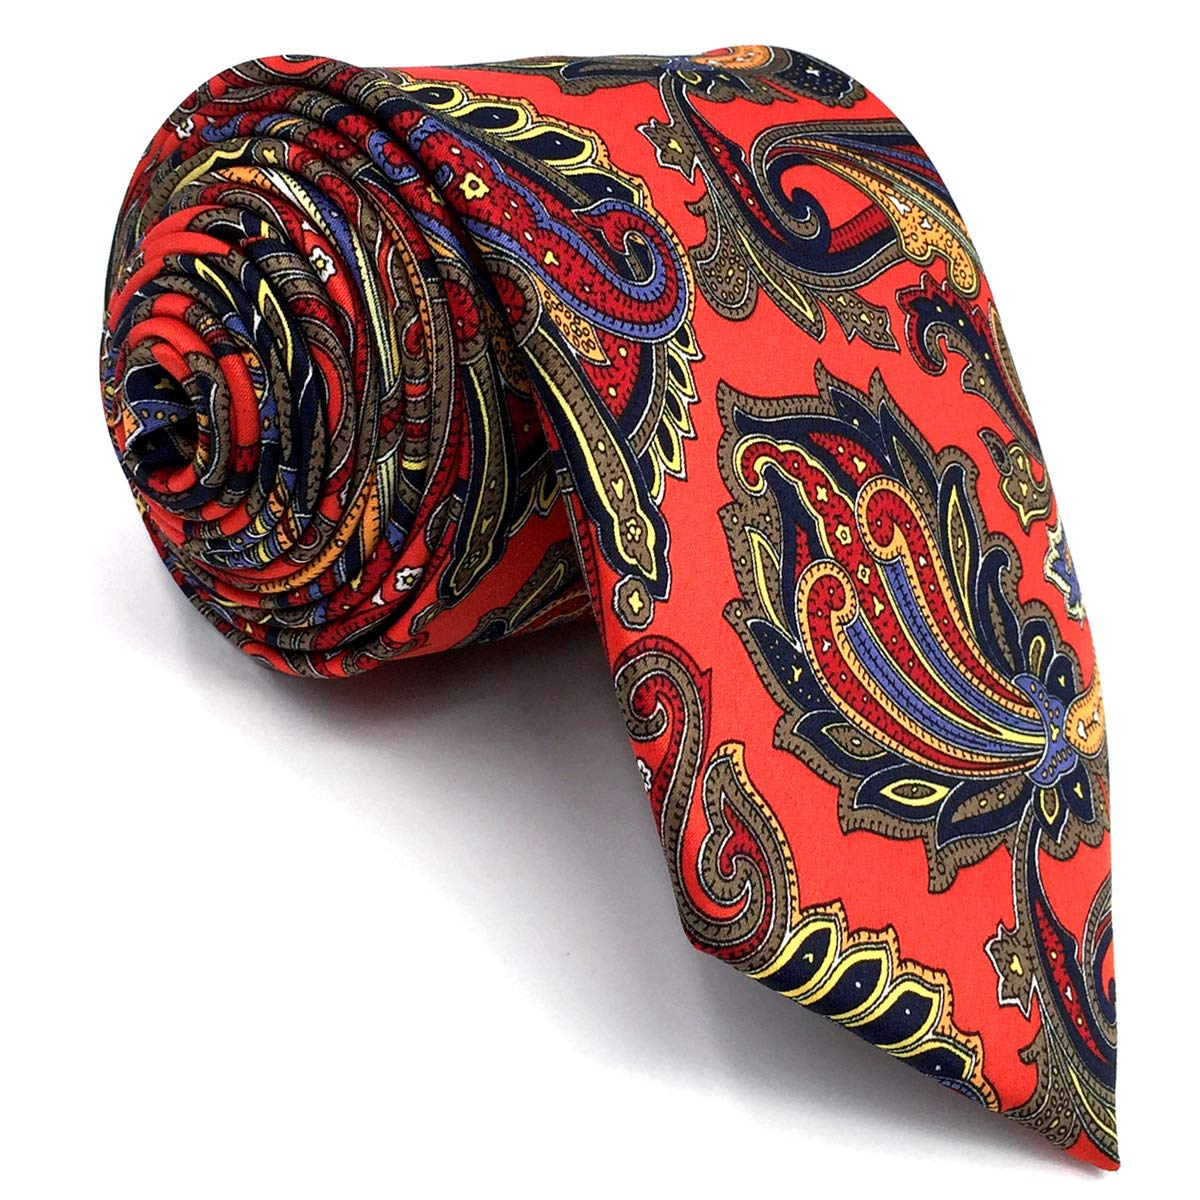 Shlax /& Wing Mens Acceossories Necktie Printed Ties Red Paisley Silk Brand New